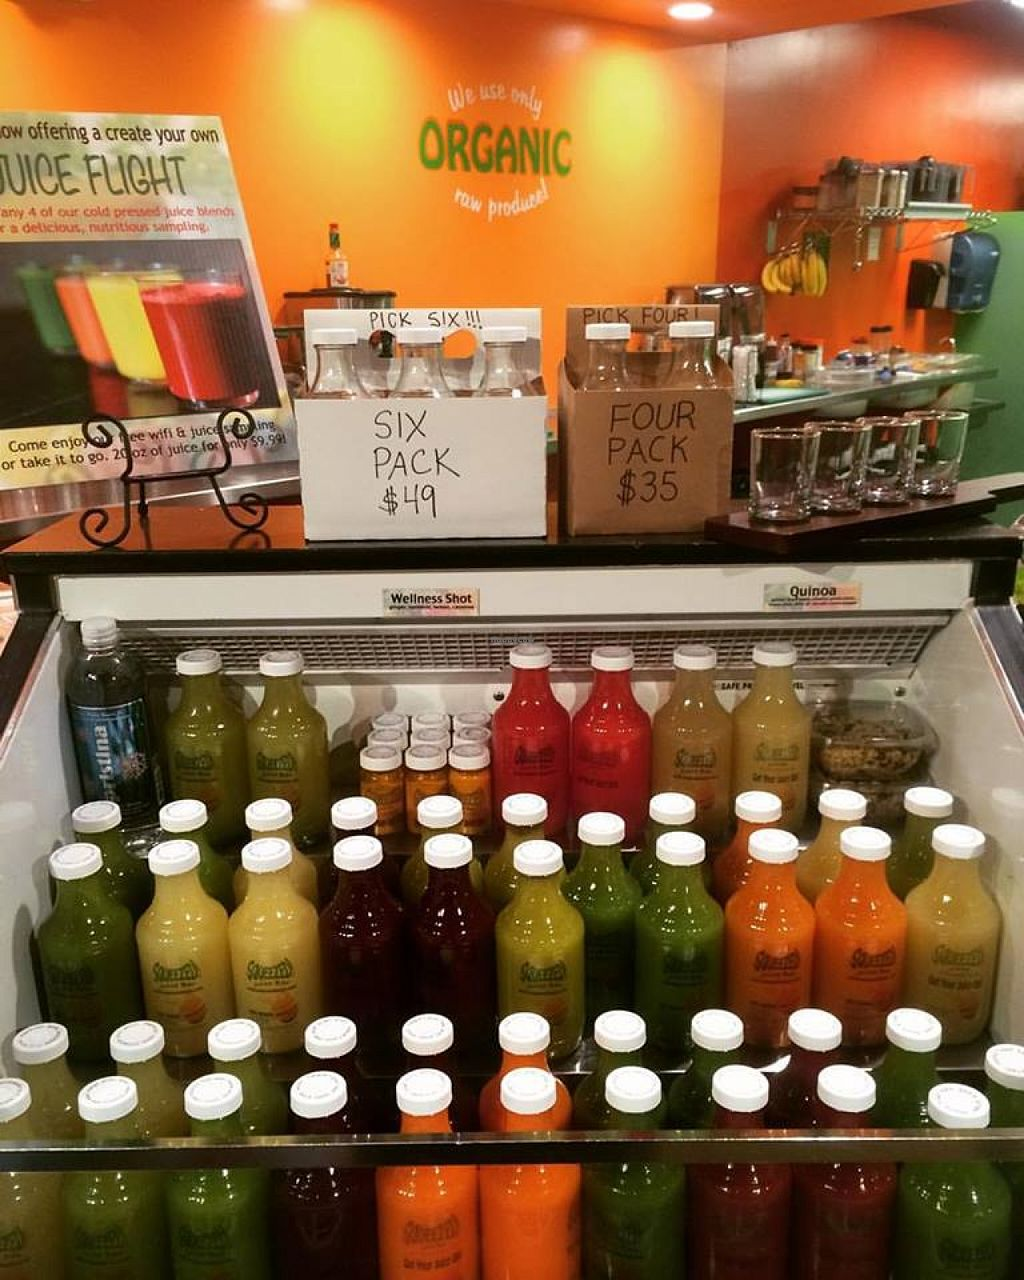 """Photo of Squeezed Juice Bar - Rio Rancho  by <a href=""""/members/profile/community"""">community</a> <br/>fresh juices  <br/> January 12, 2016  - <a href='/contact/abuse/image/67721/132144'>Report</a>"""